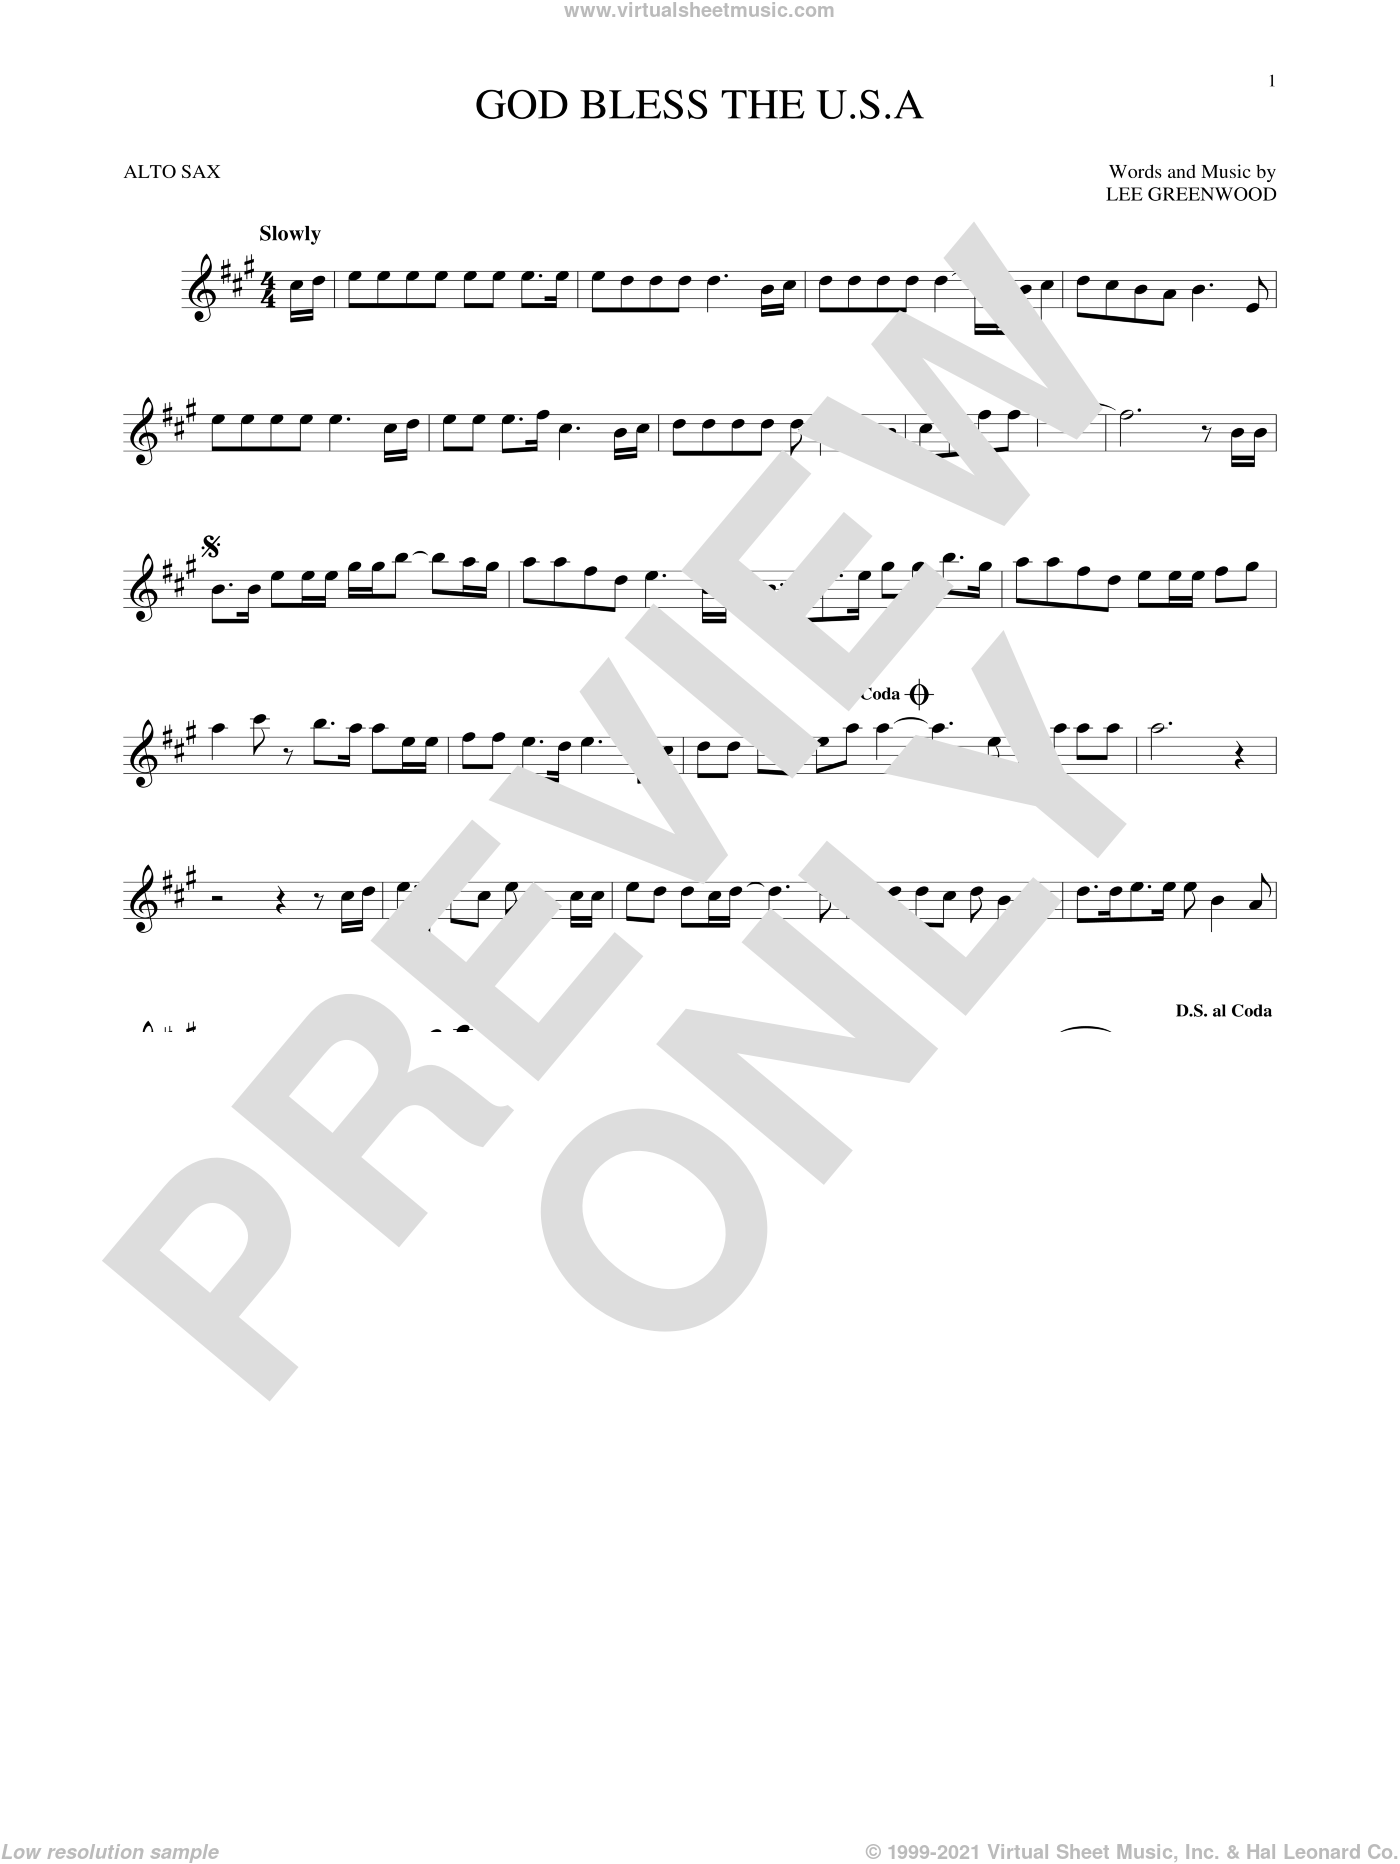 God Bless The U.S.A. sheet music for alto saxophone solo by Lee Greenwood, intermediate skill level